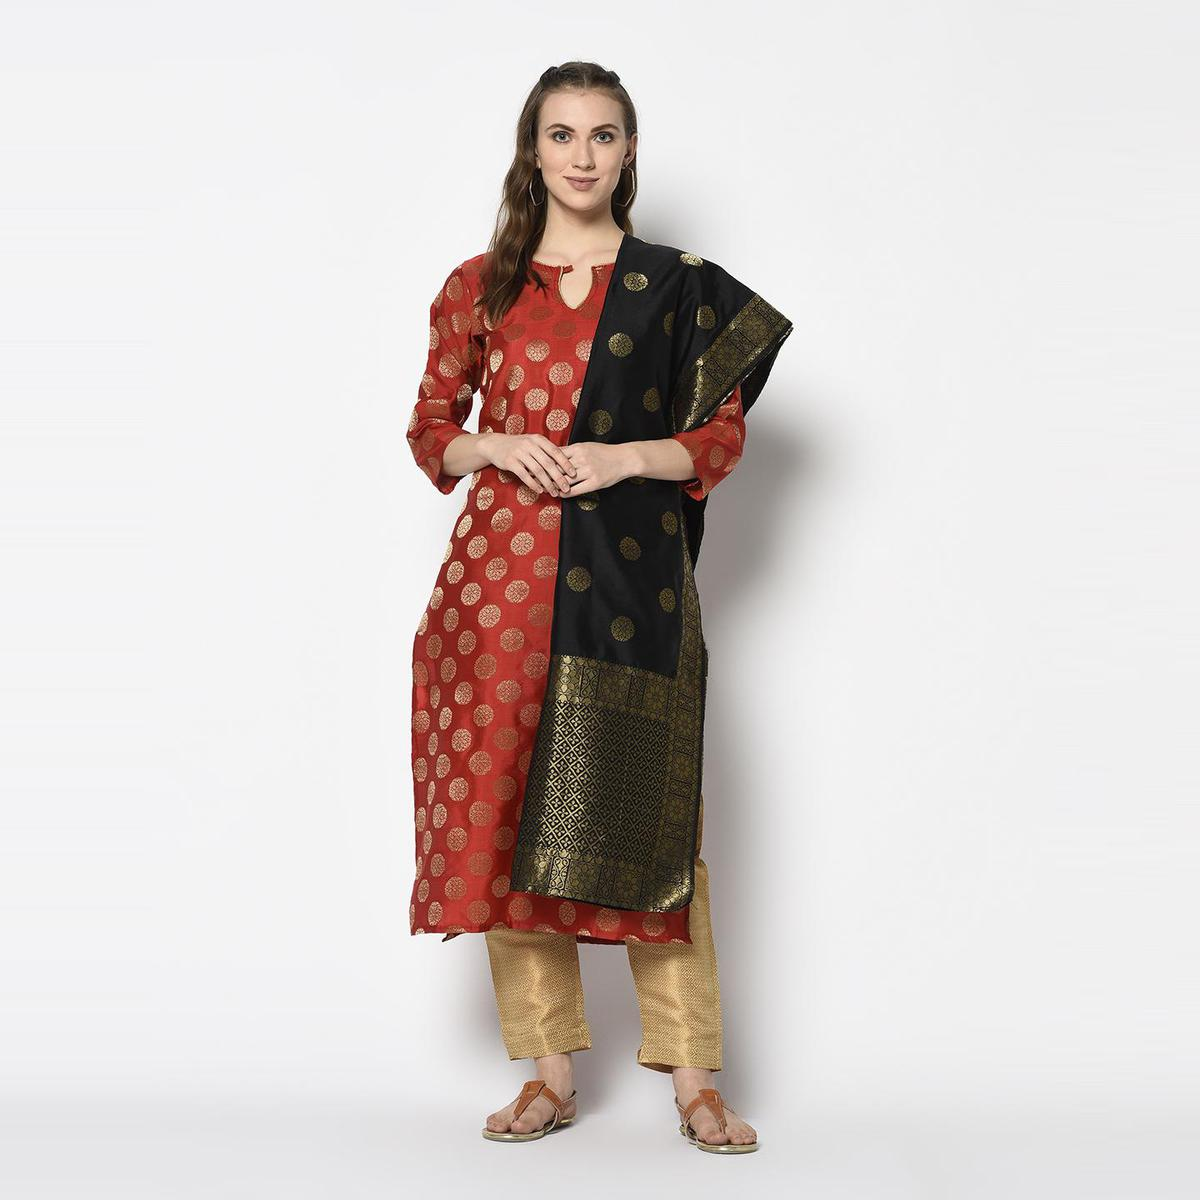 Exclusive Red Colored Festive Wear Woven Jacquard Cotton Dress Material